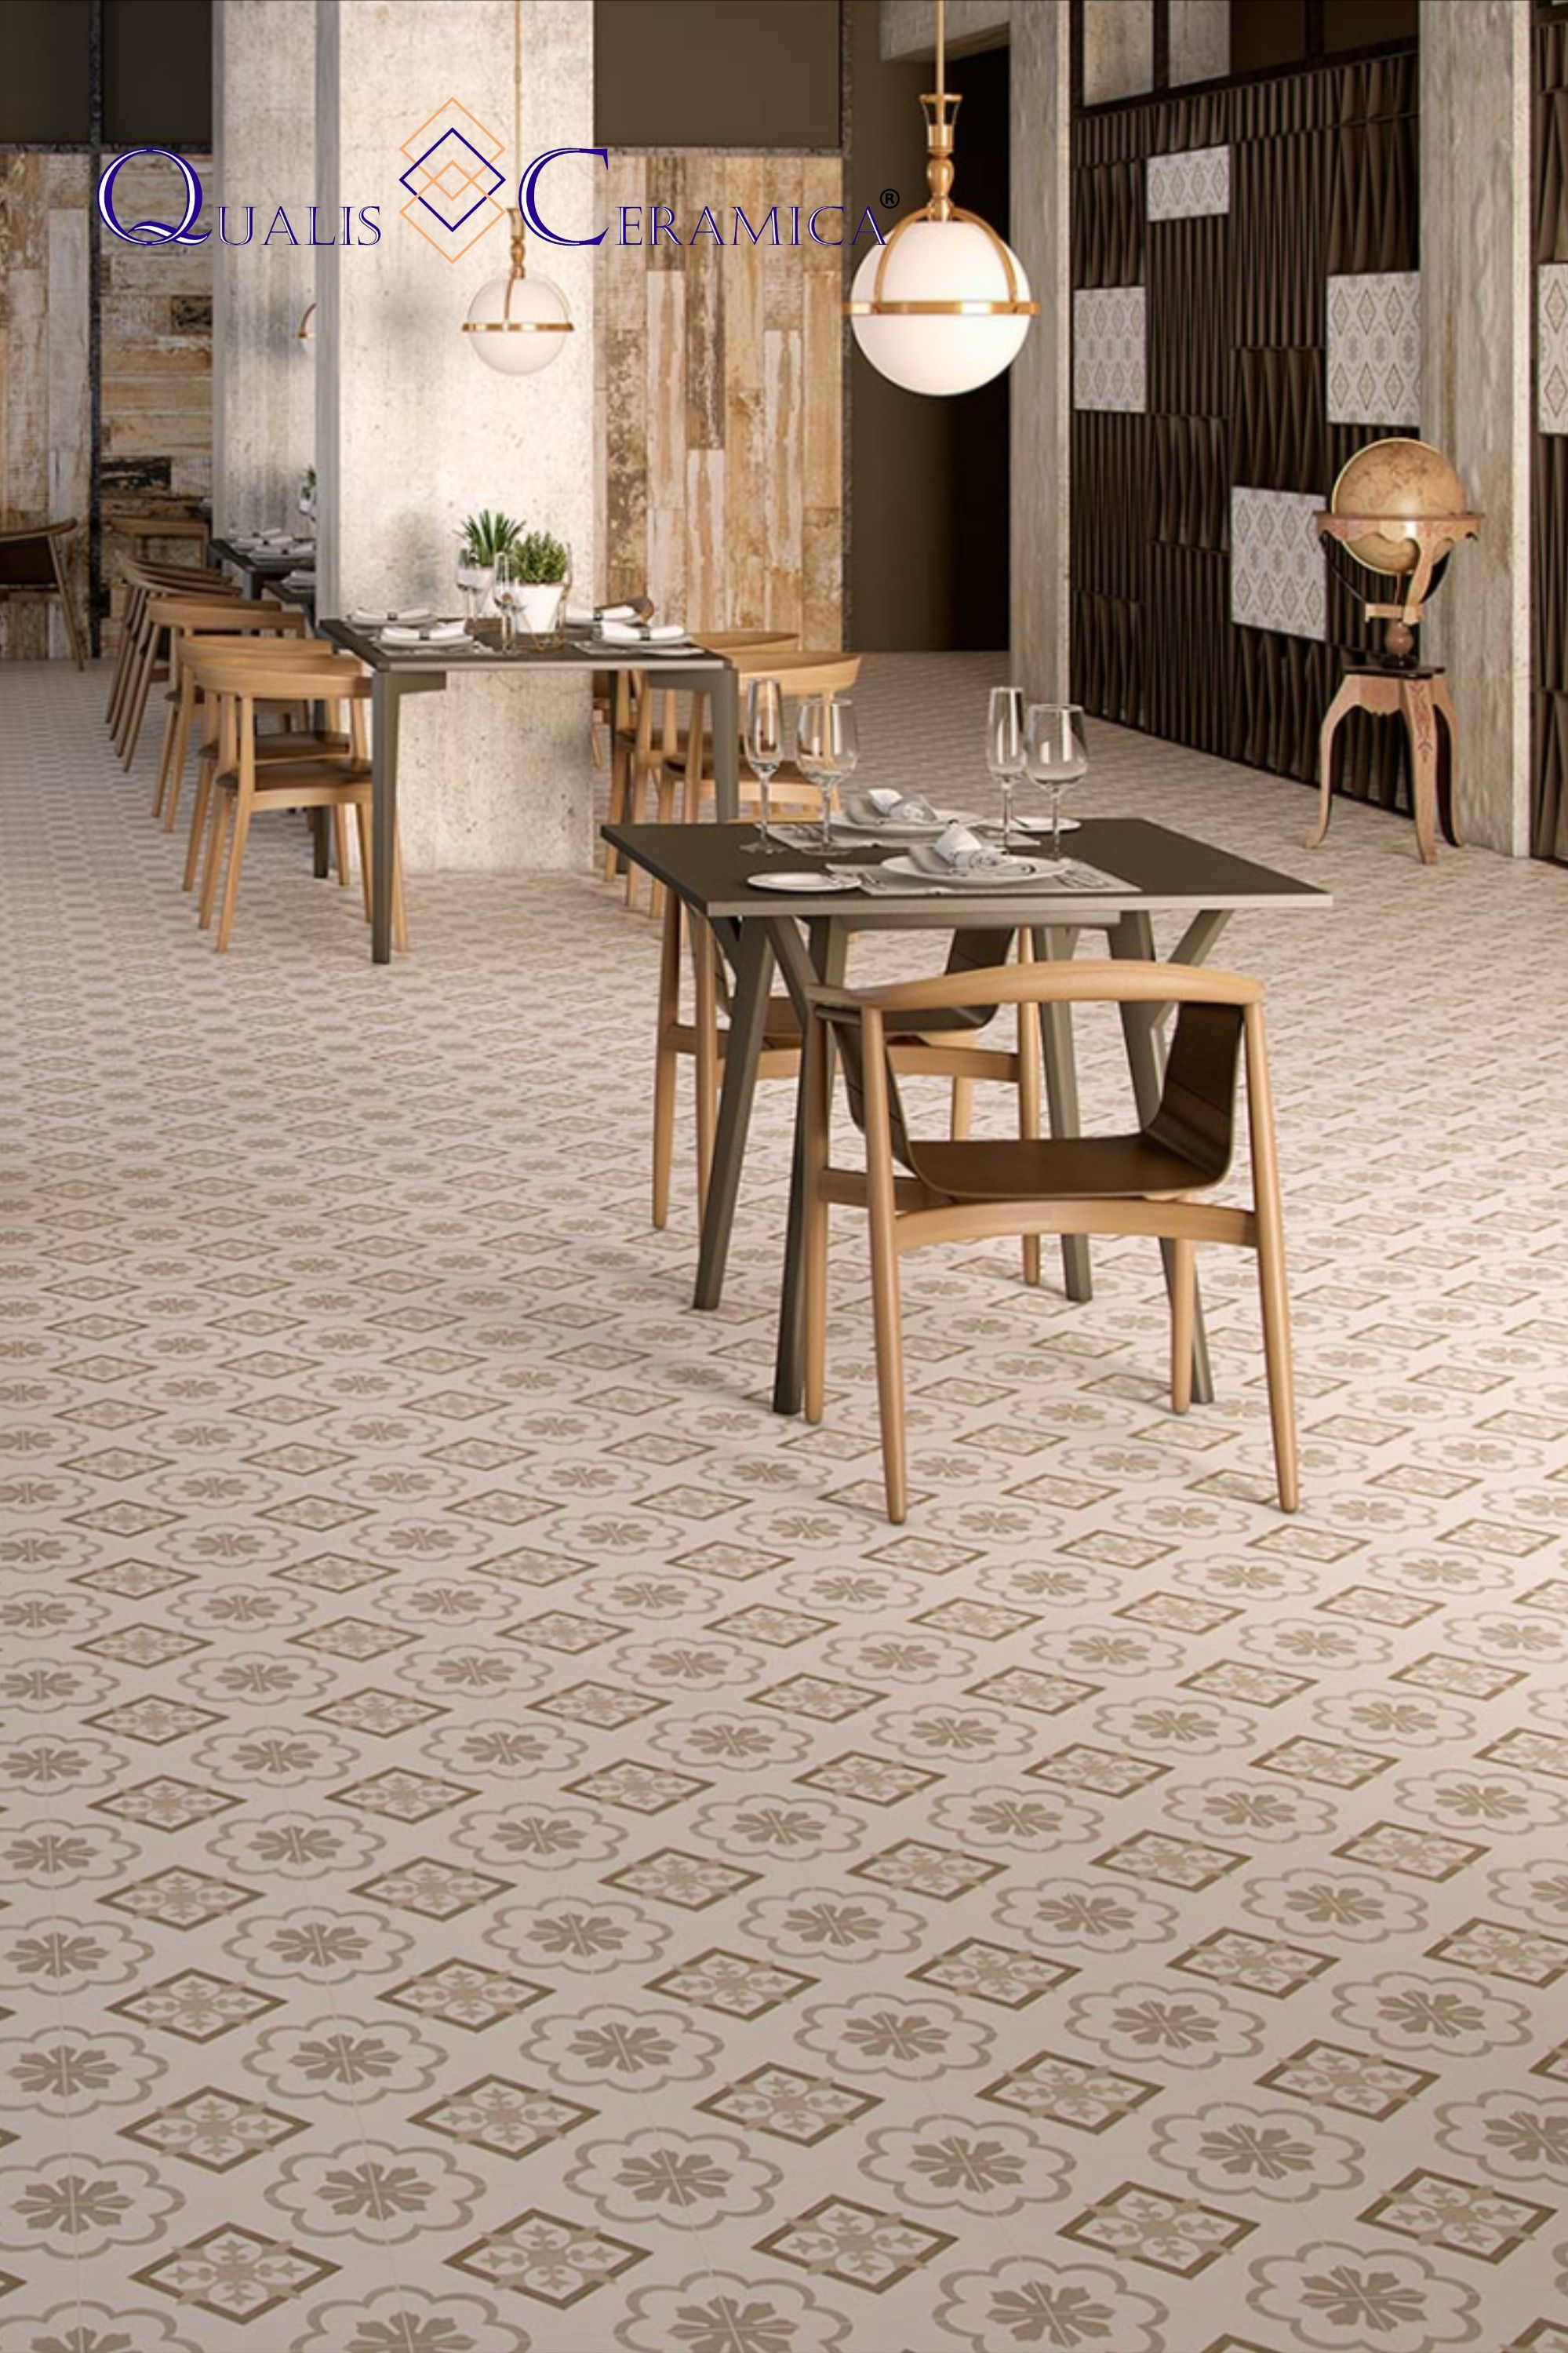 Qualis Ceramica Gibraltar Catalan Beige 10x10 Dining Floor And Wall Cement Look Porcelain Tile In 2020 Flooring Entryway Flooring Porcelain Tile